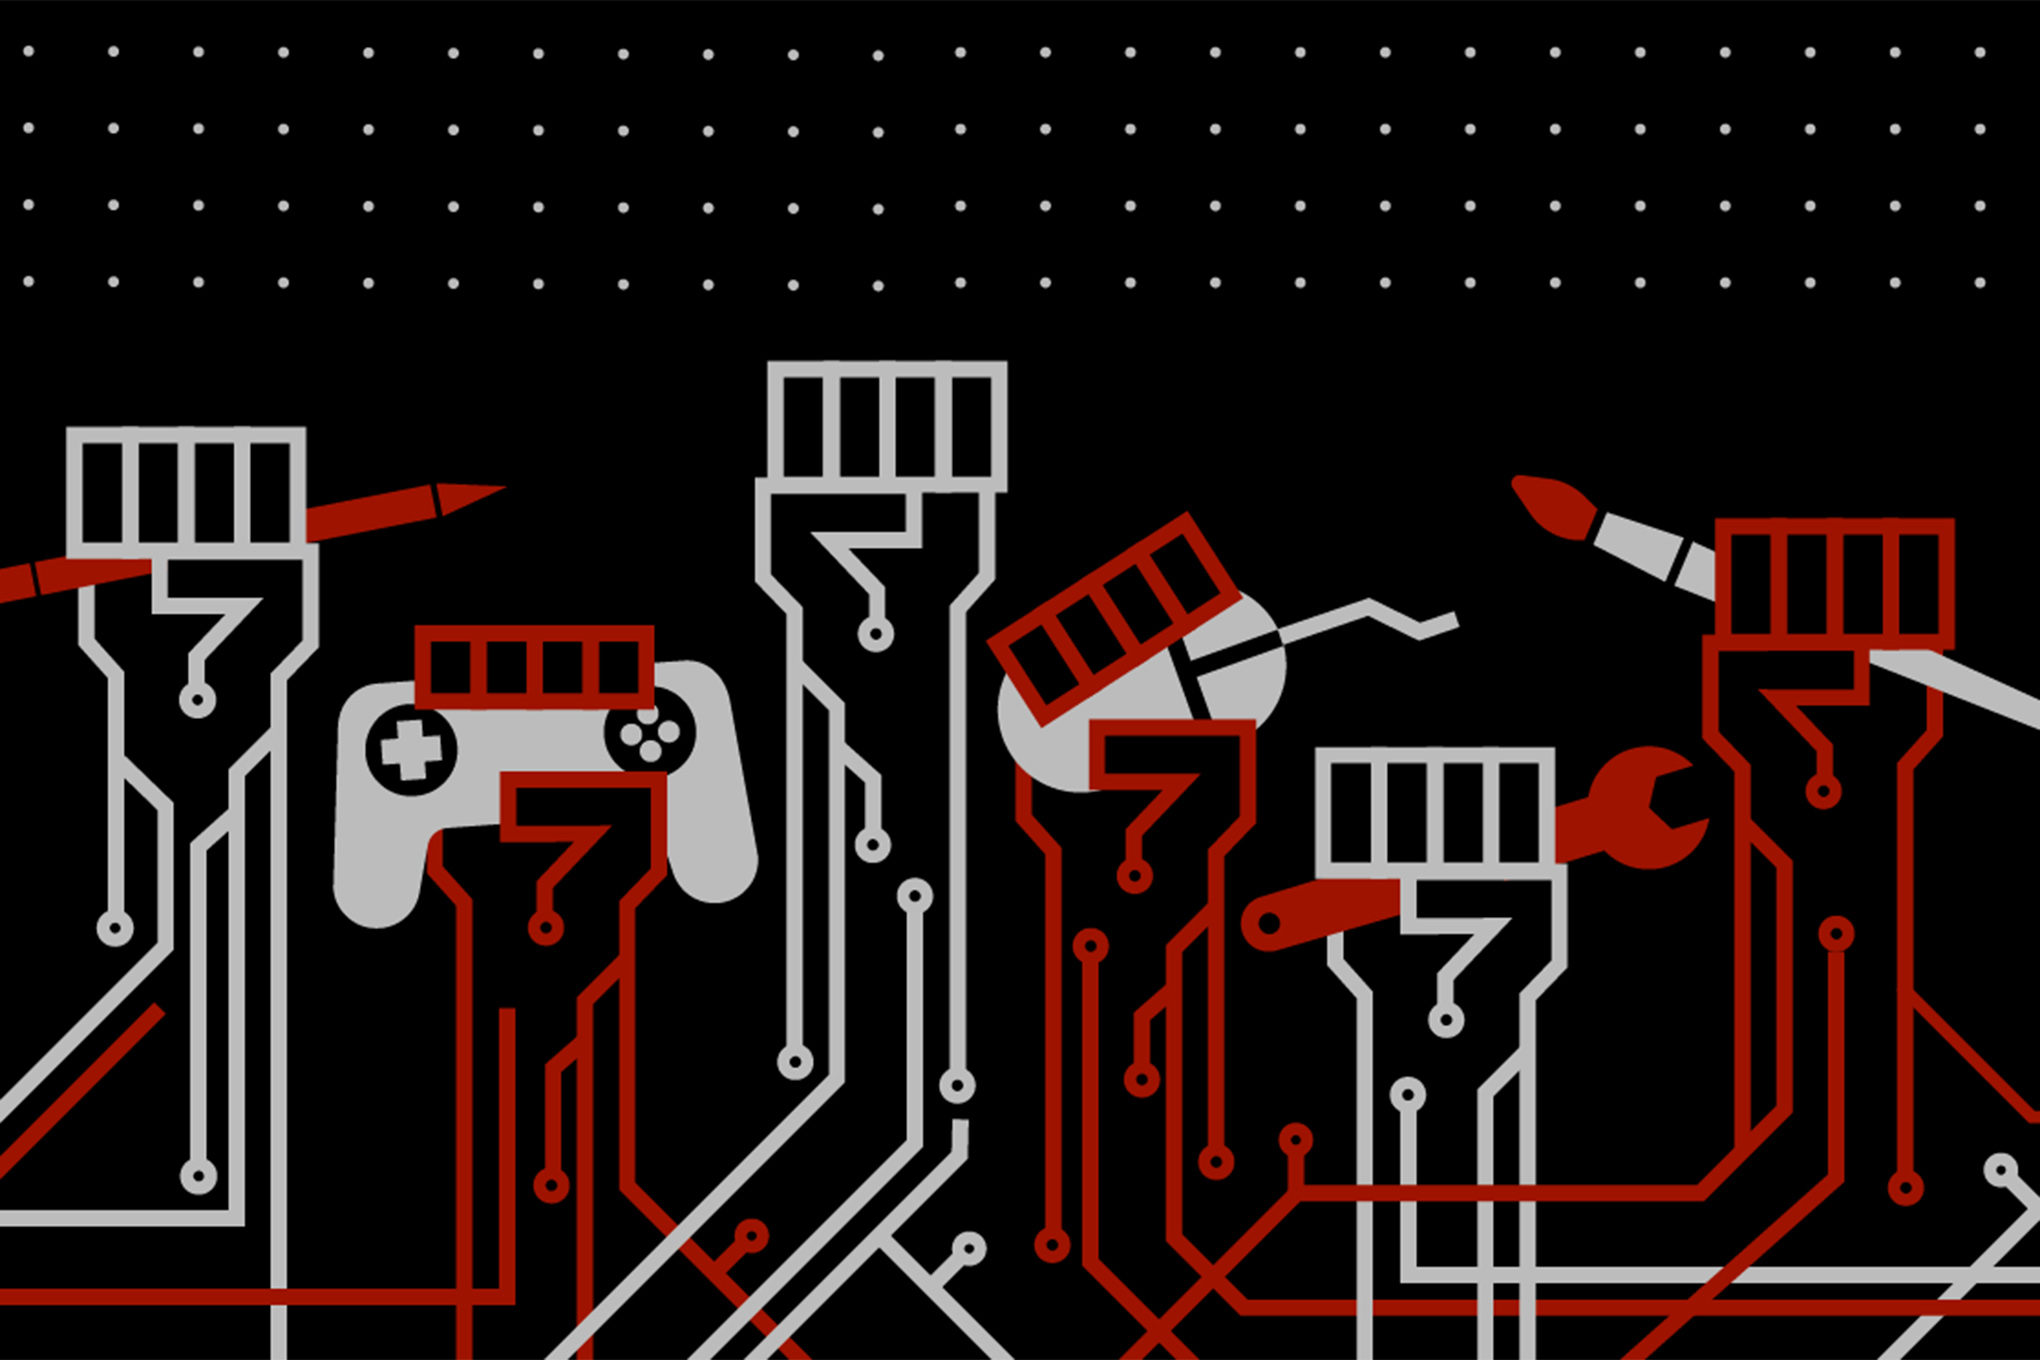 A stylize graphic of six fists raised in solidarity. One holds a pencil, another a mouse, still another a video game controller.